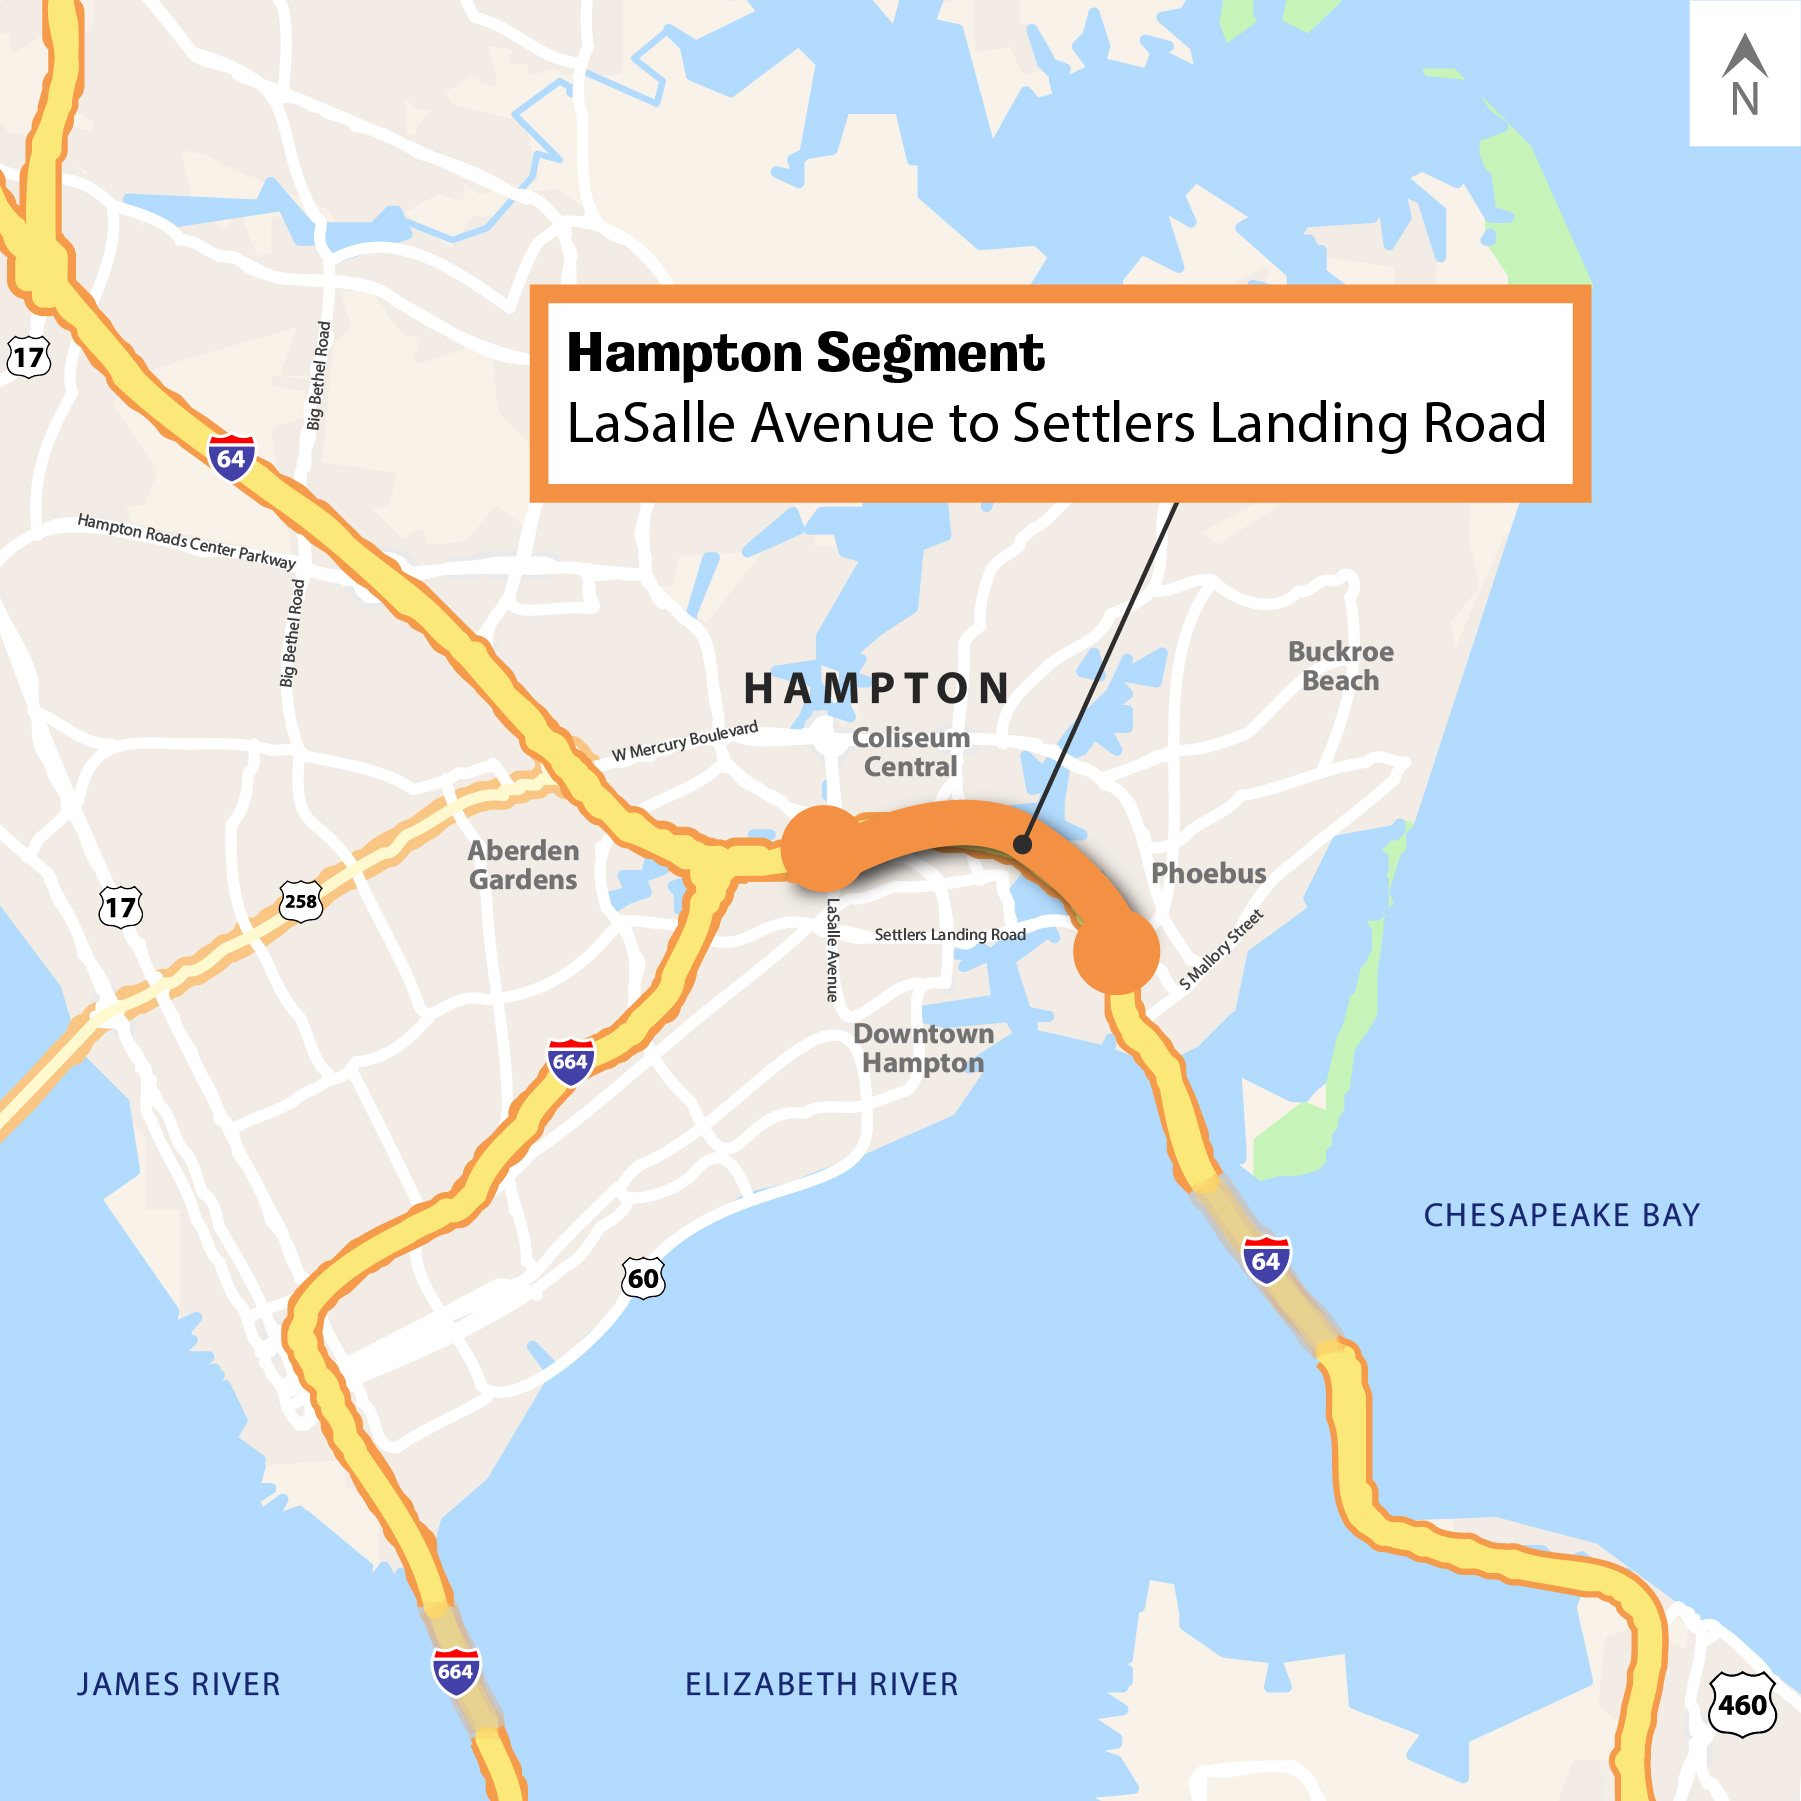 Map showing Segment 4C: Hampton Segment - LaSalle Avenue to Settlers Landing Road